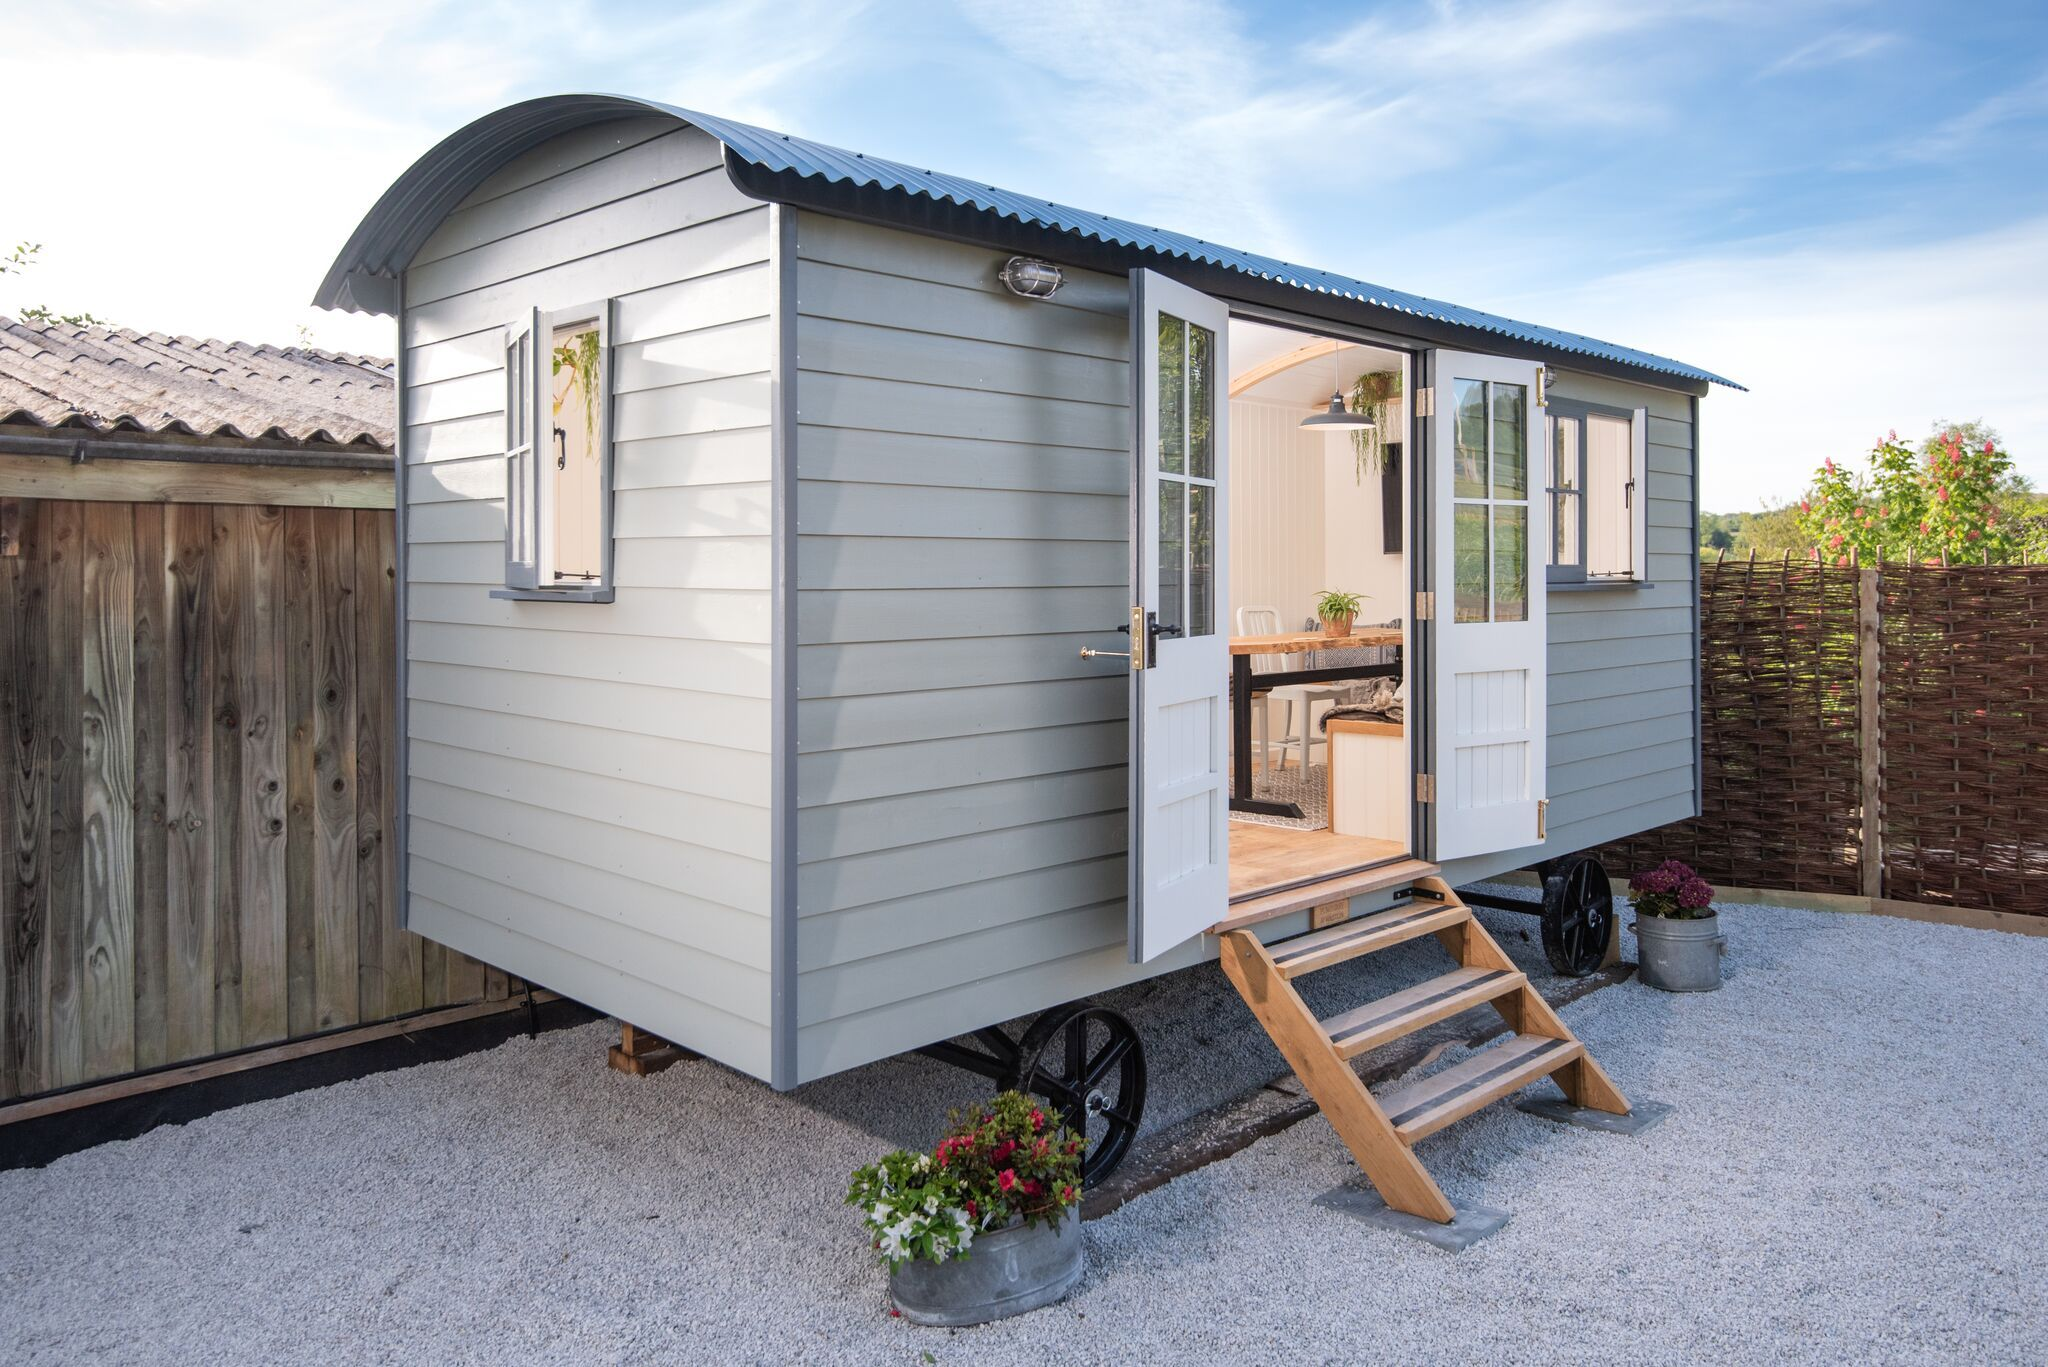 Gallery Shepherds Huts For Sale Cornwall Pumphrey Weston In 2020 Shepherds Hut Shepherds Hut For Sale Backyard Guest Houses